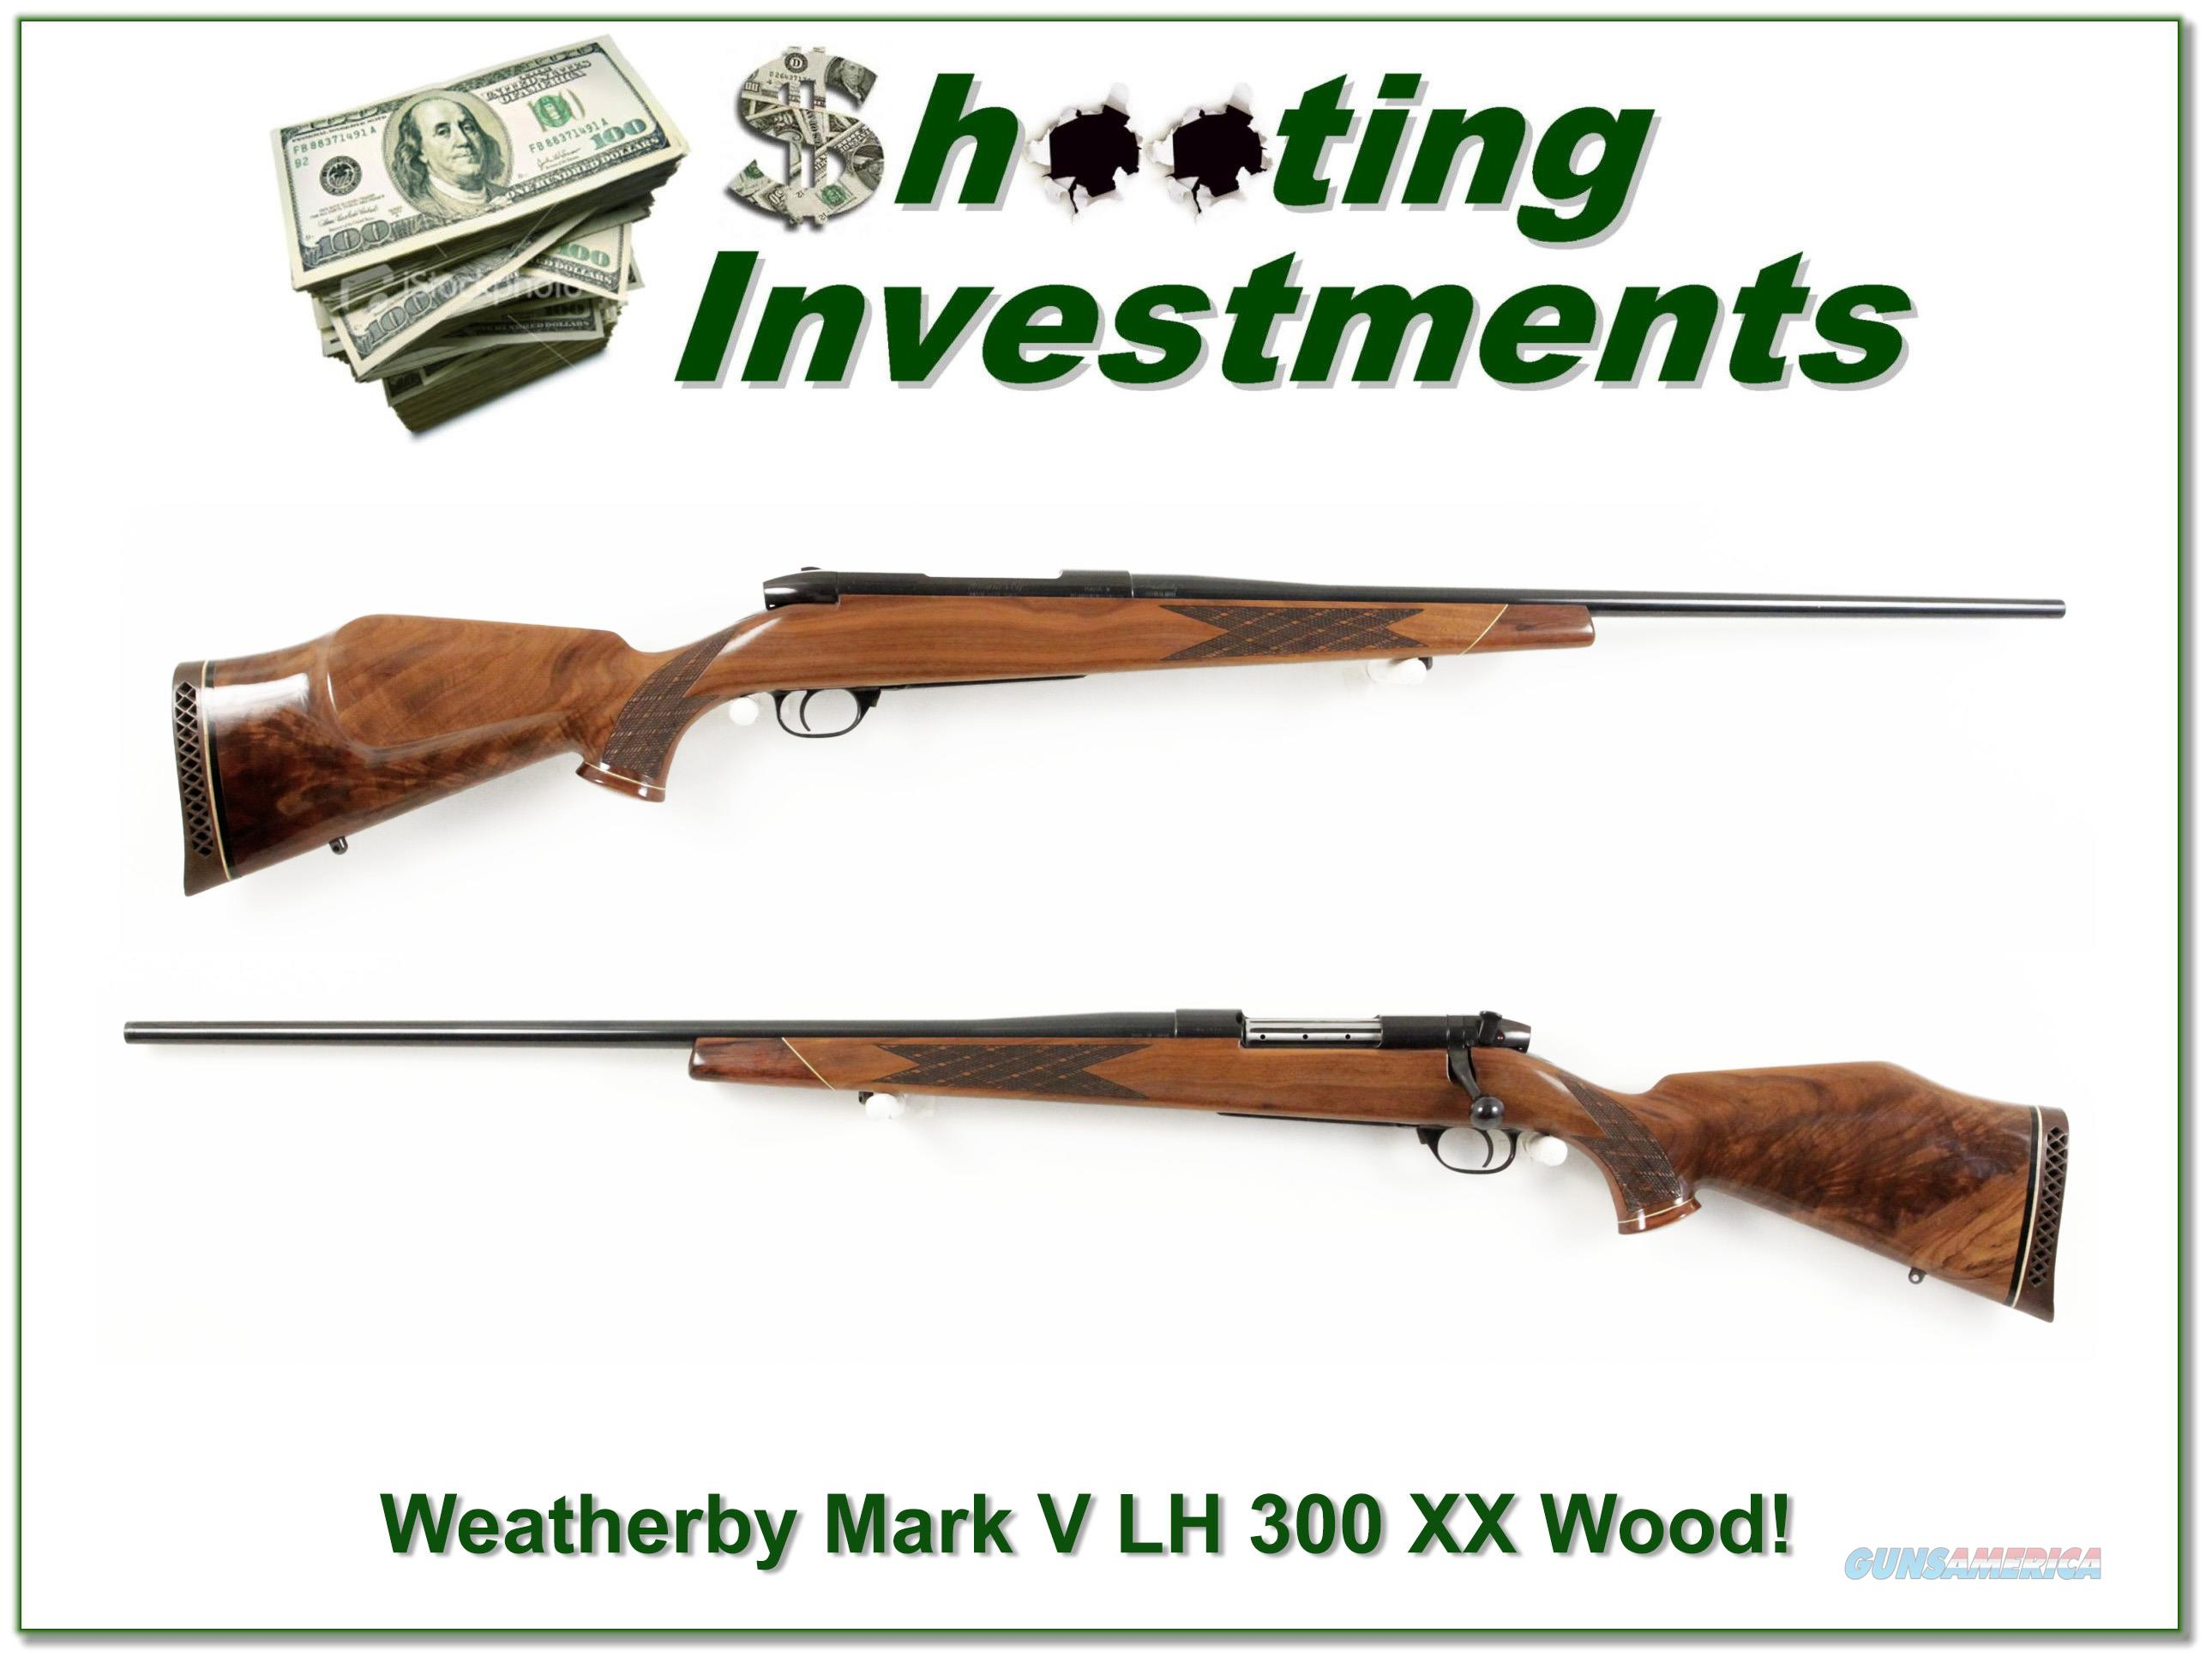 Weatherby Mark V Deluxe LH 300 26in Nice Wood!  Guns > Rifles > Weatherby Rifles > Sporting